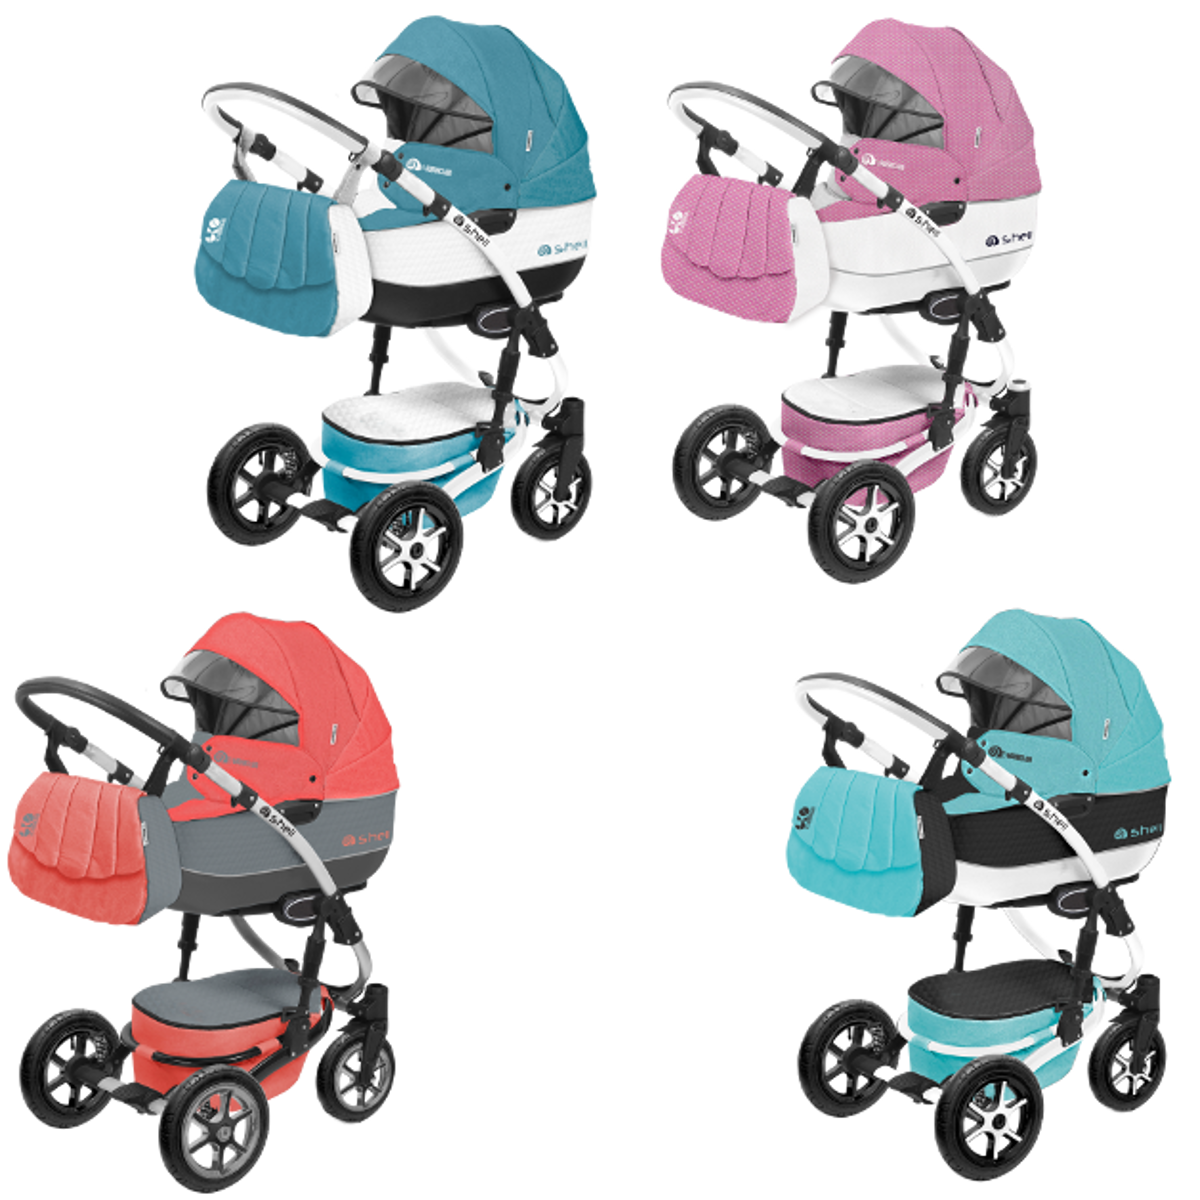 shell kombi kinderwagen 2in1 oder 3in1 mit babywanne sportwagenaufsatz buggy babyschale. Black Bedroom Furniture Sets. Home Design Ideas